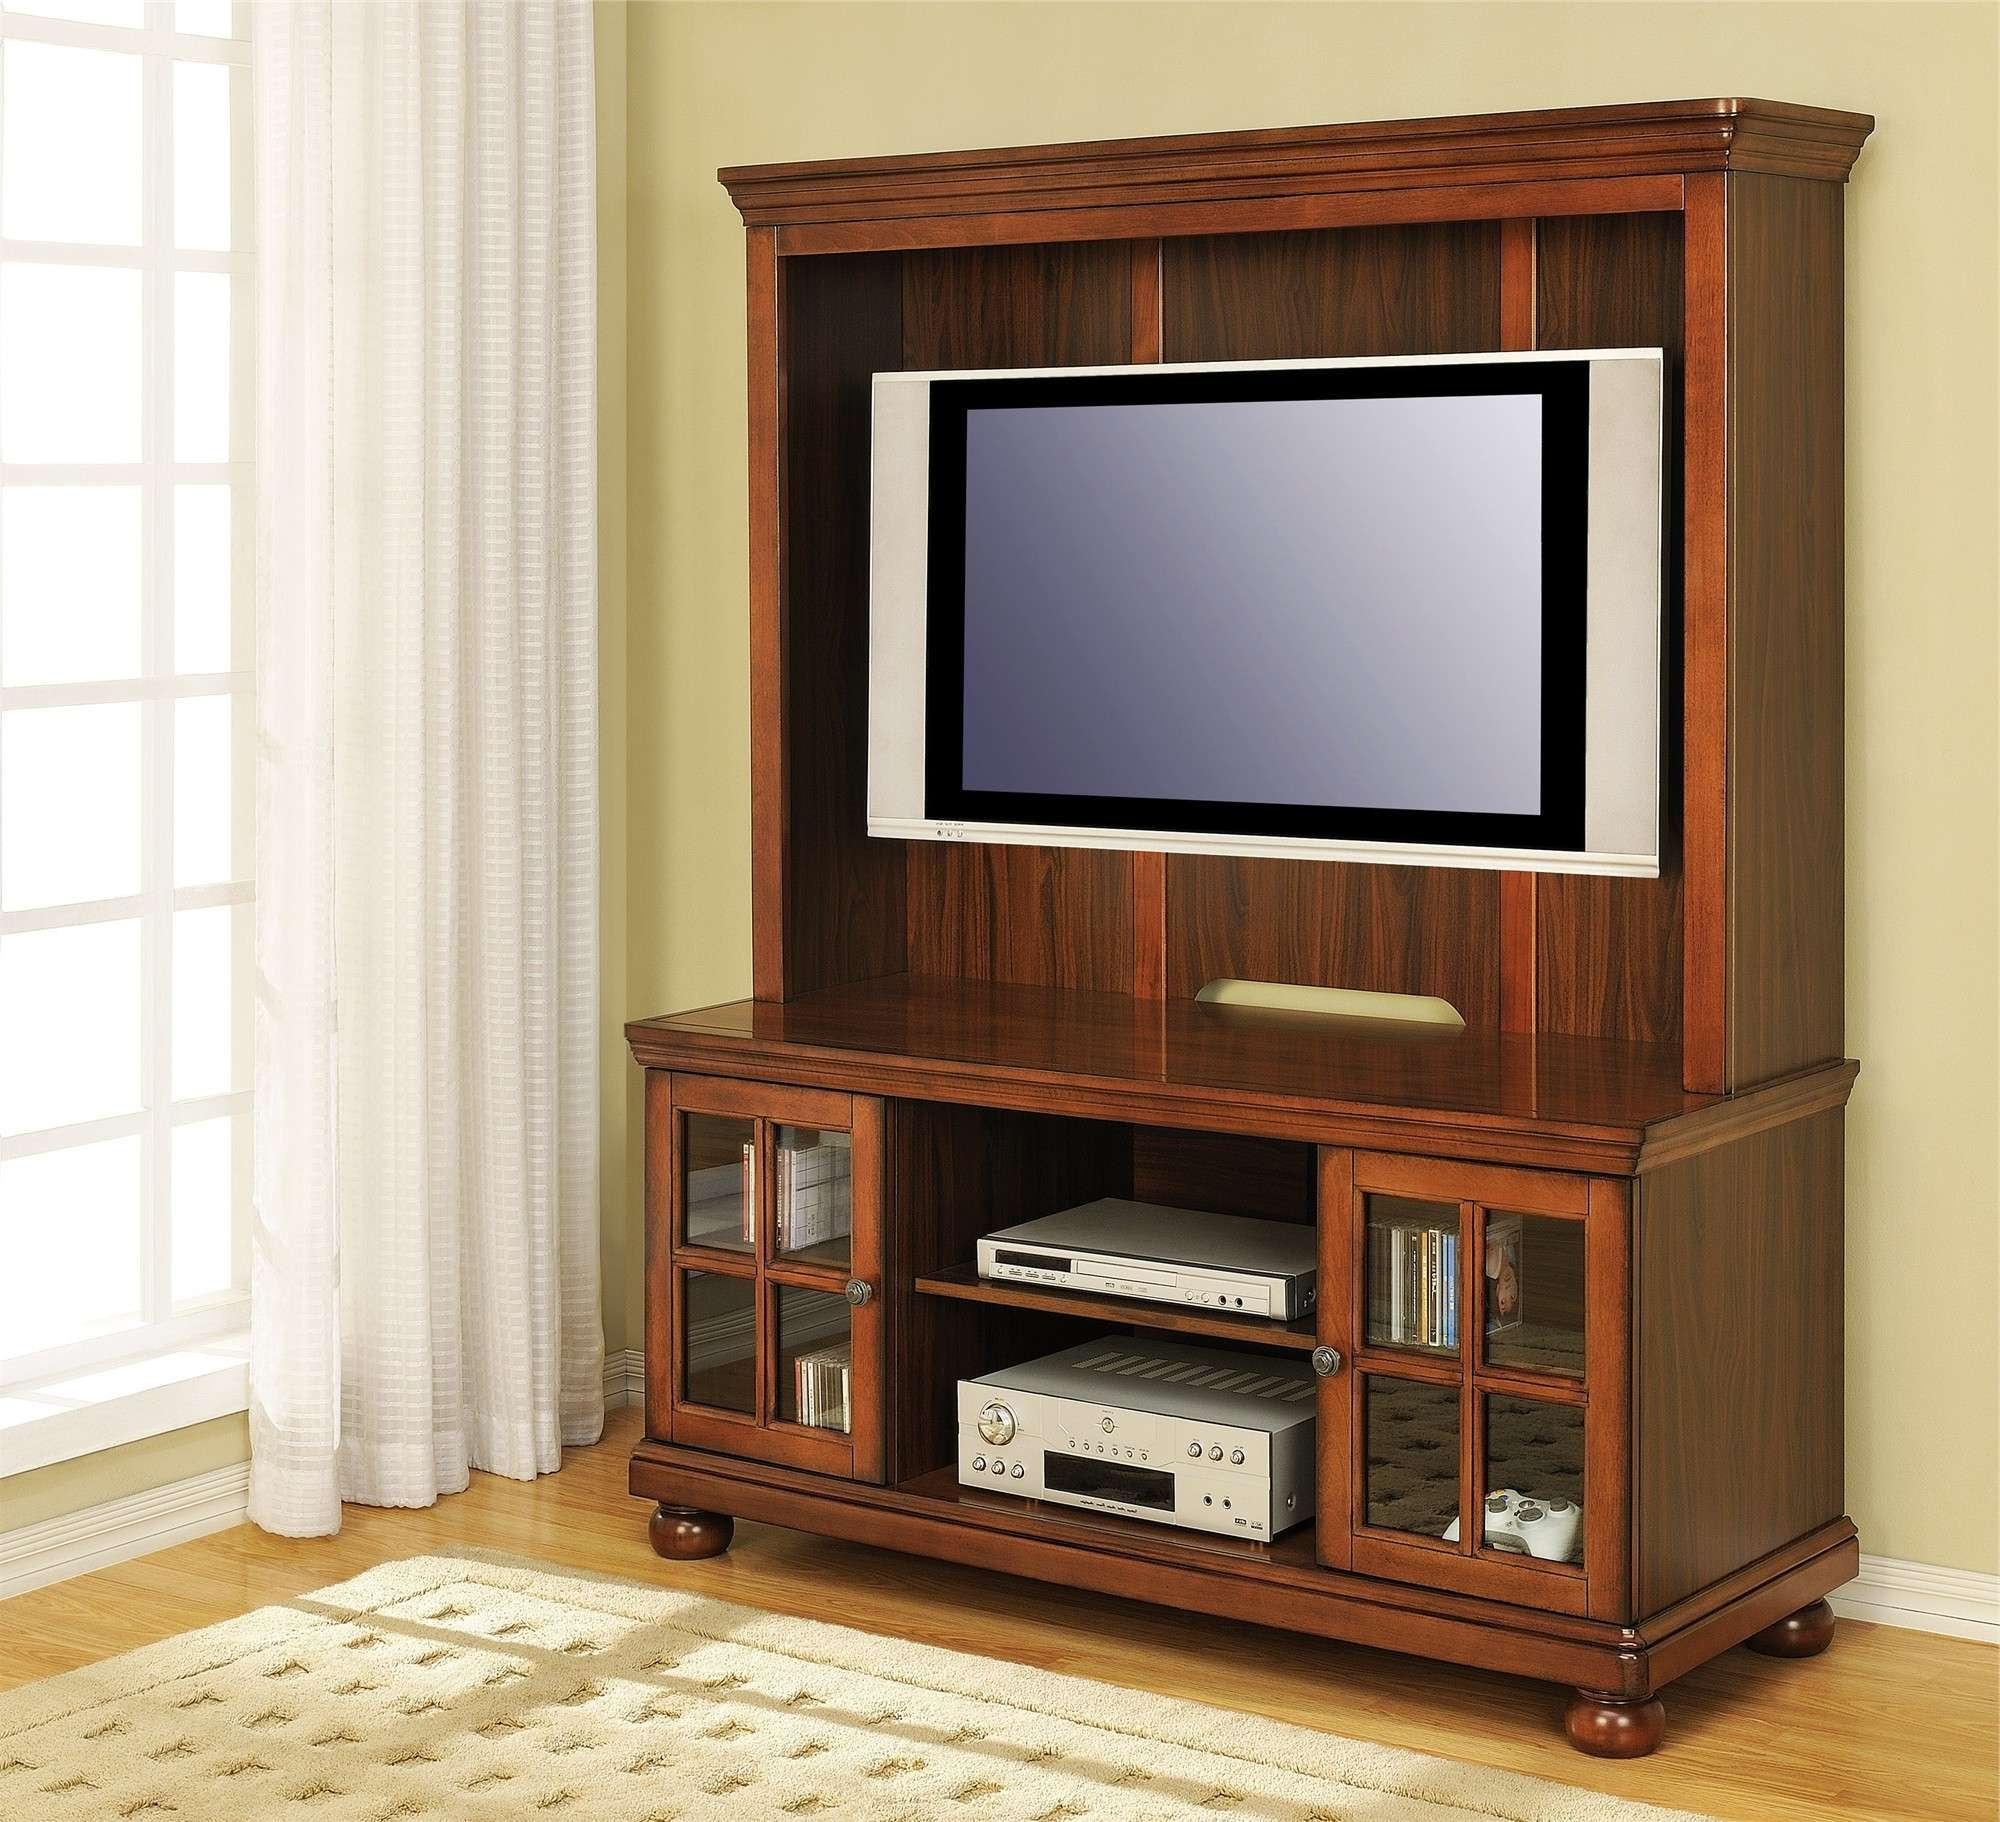 Attirant Corner Oak Tv Cabinets For Flat Screens With Doors U2022 Corner Cabinets  Regarding Oak Tv Cabinets